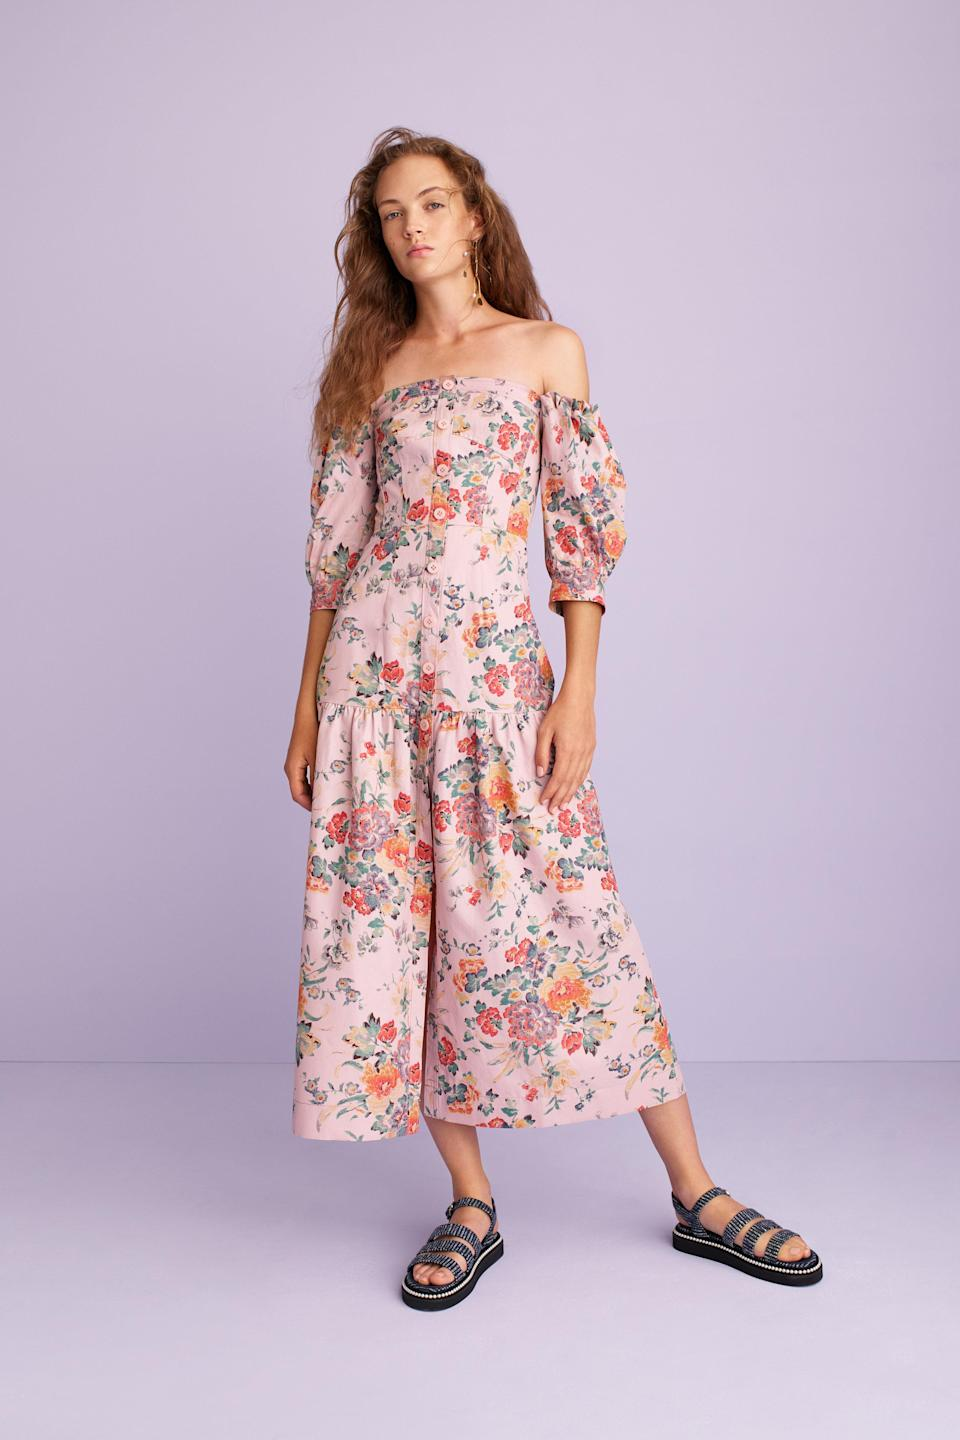 <p><i>Model wears an off-shoulder, floral print dress from the SS18 Rebecca Taylor collection. (Photo: ImaxTree) </i></p>